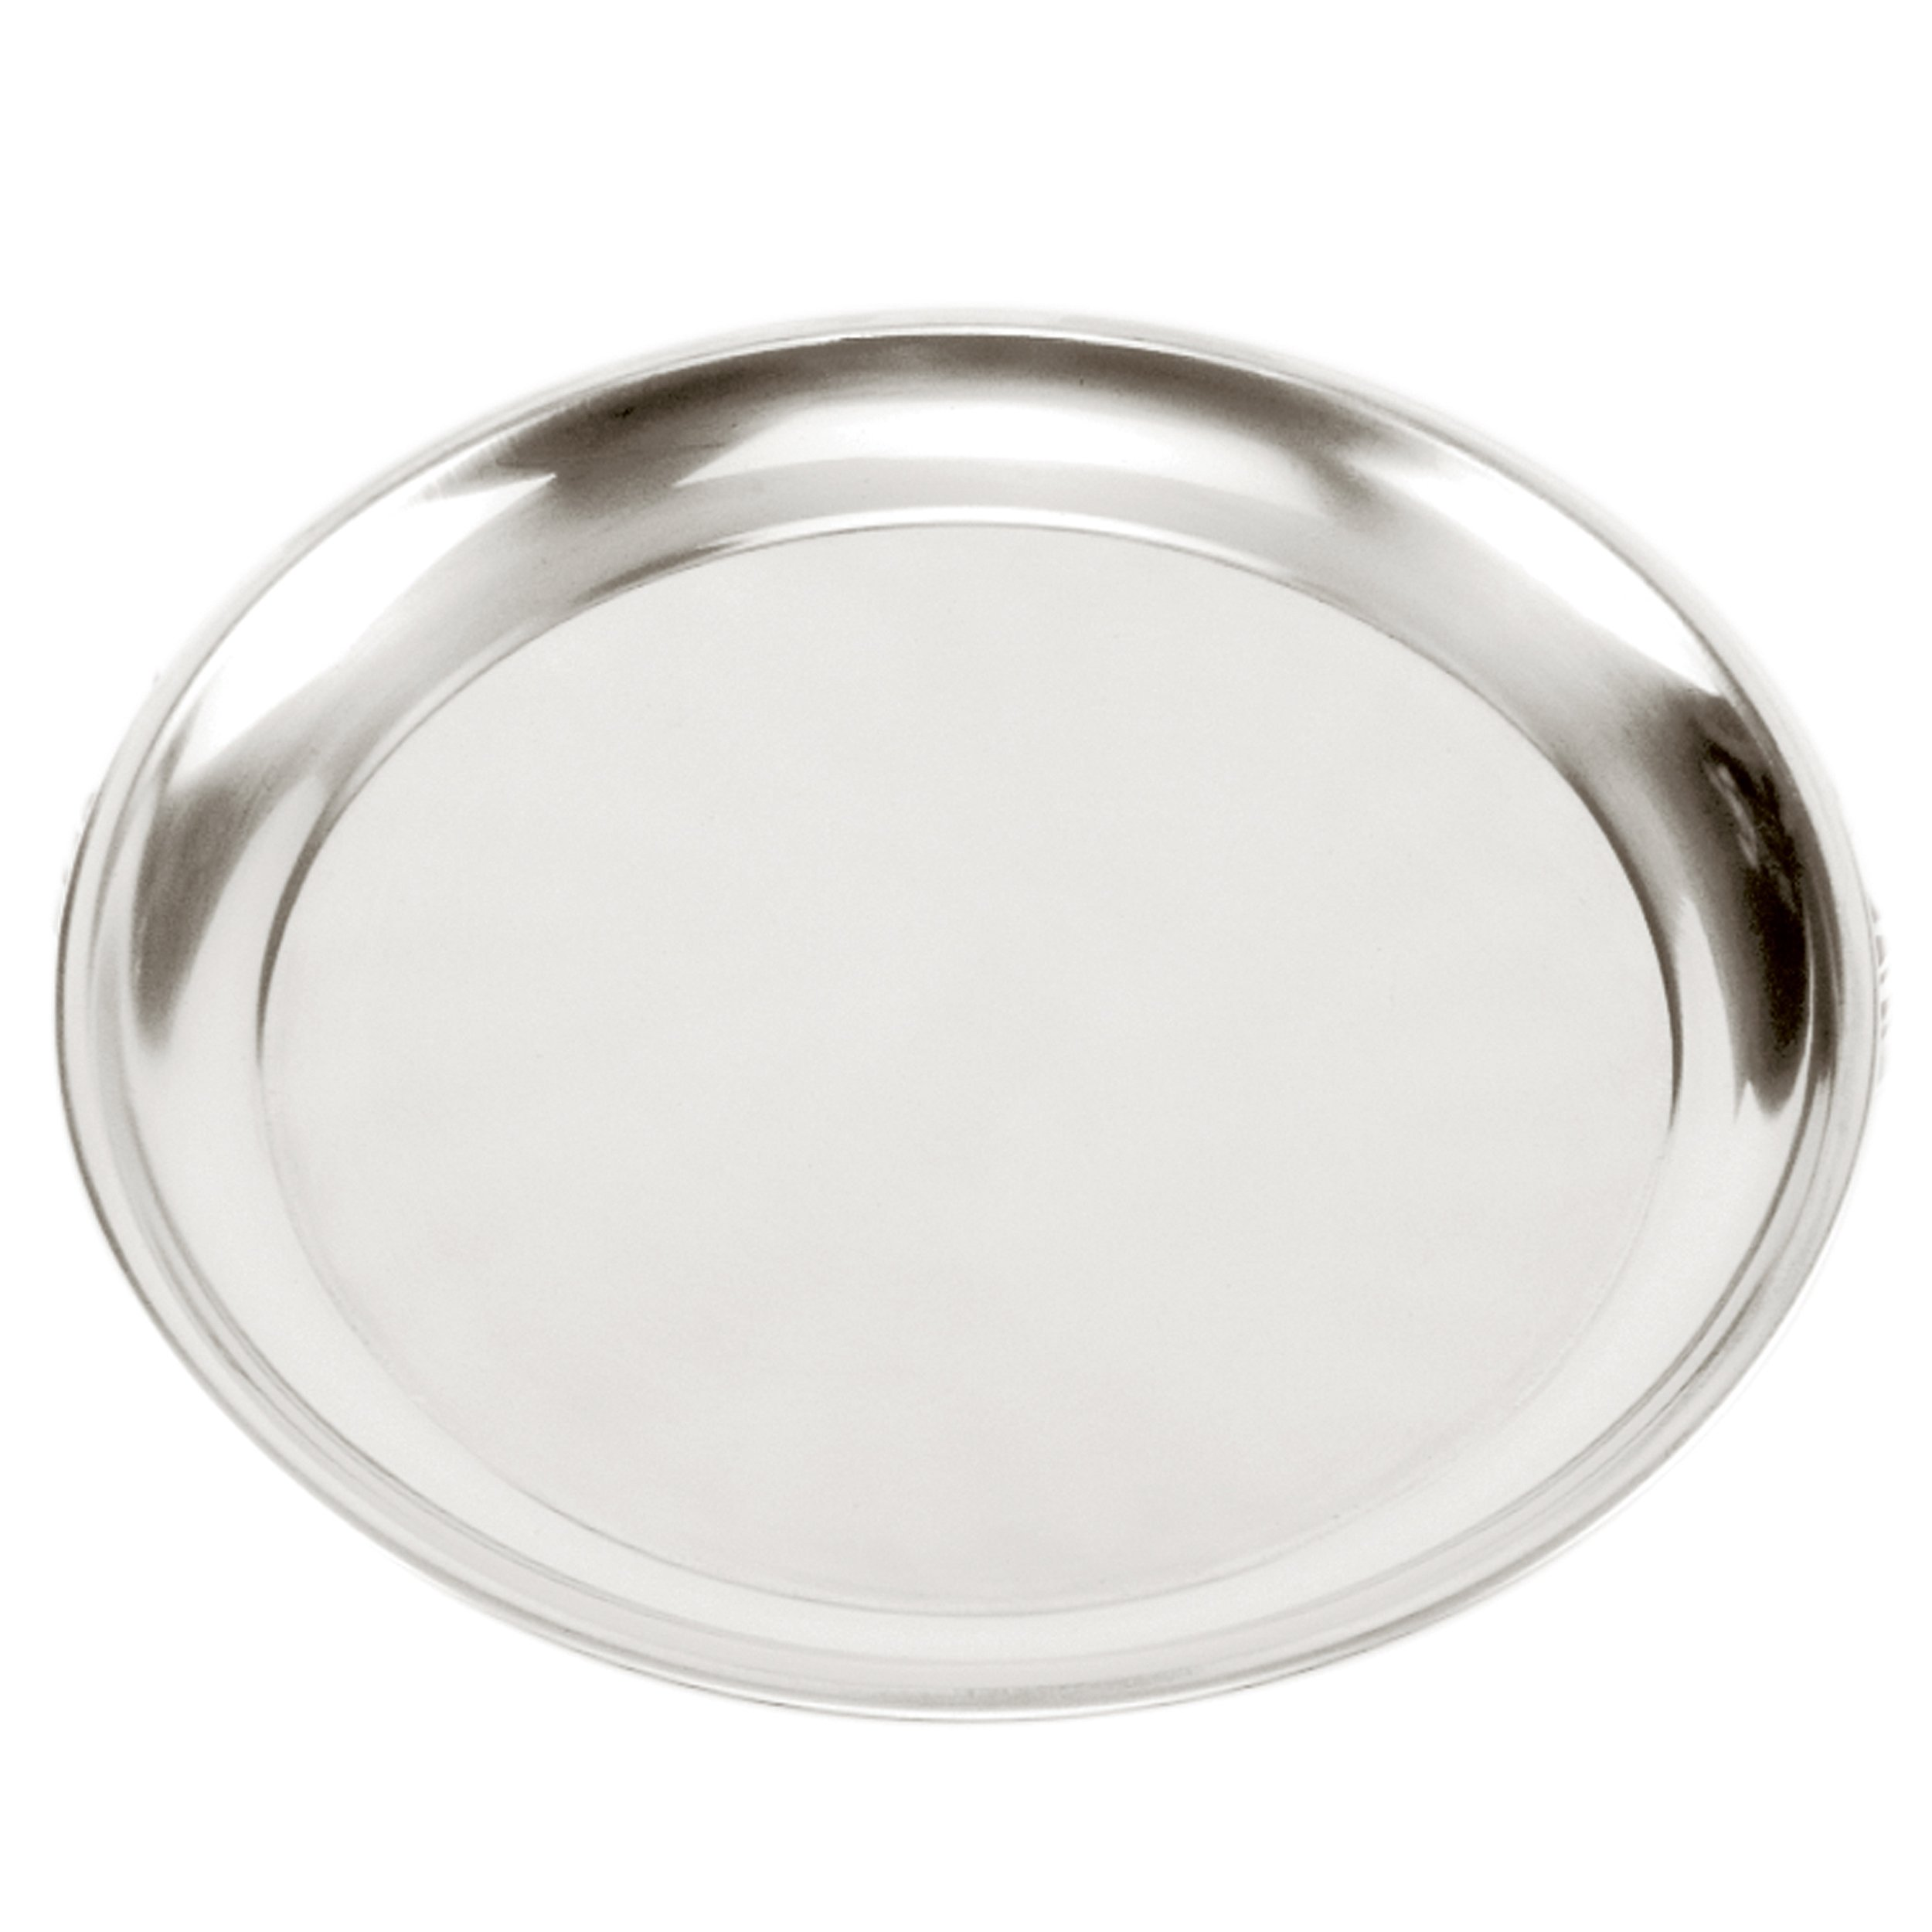 Norpro 5672 Stainless Steel Pizza Pan, 13-1/2-Inch